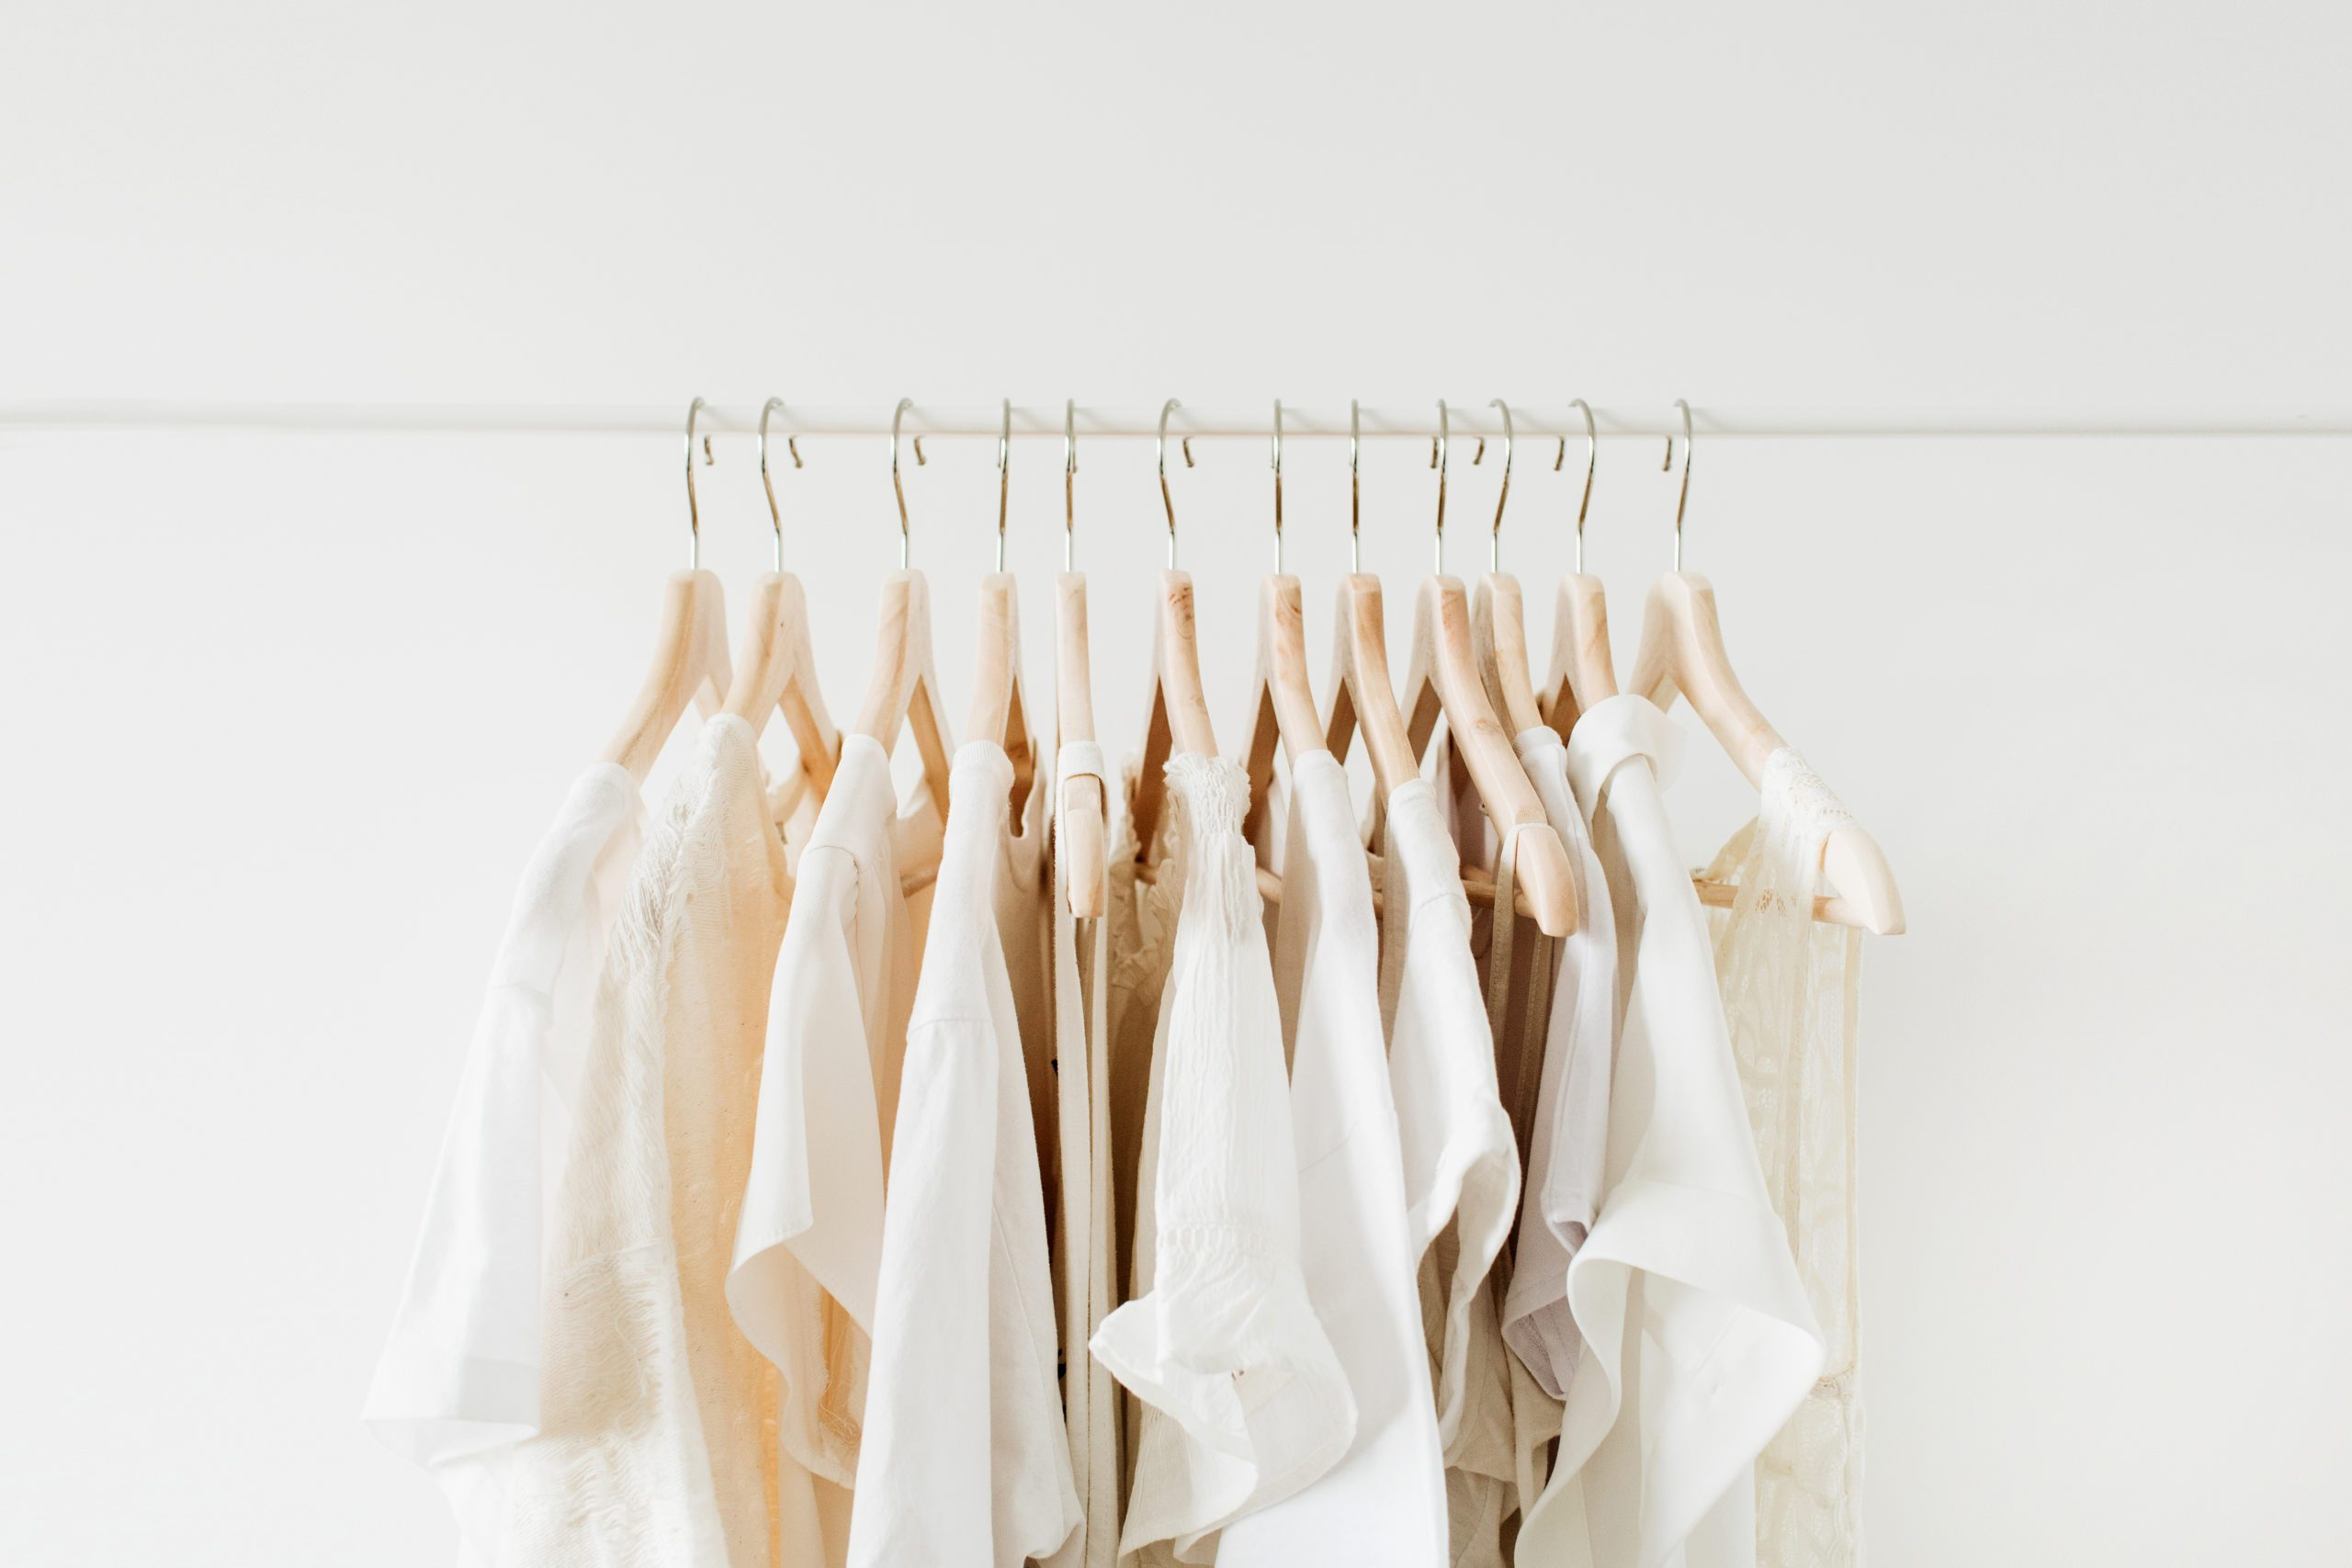 neutral clothing hanging on a rack